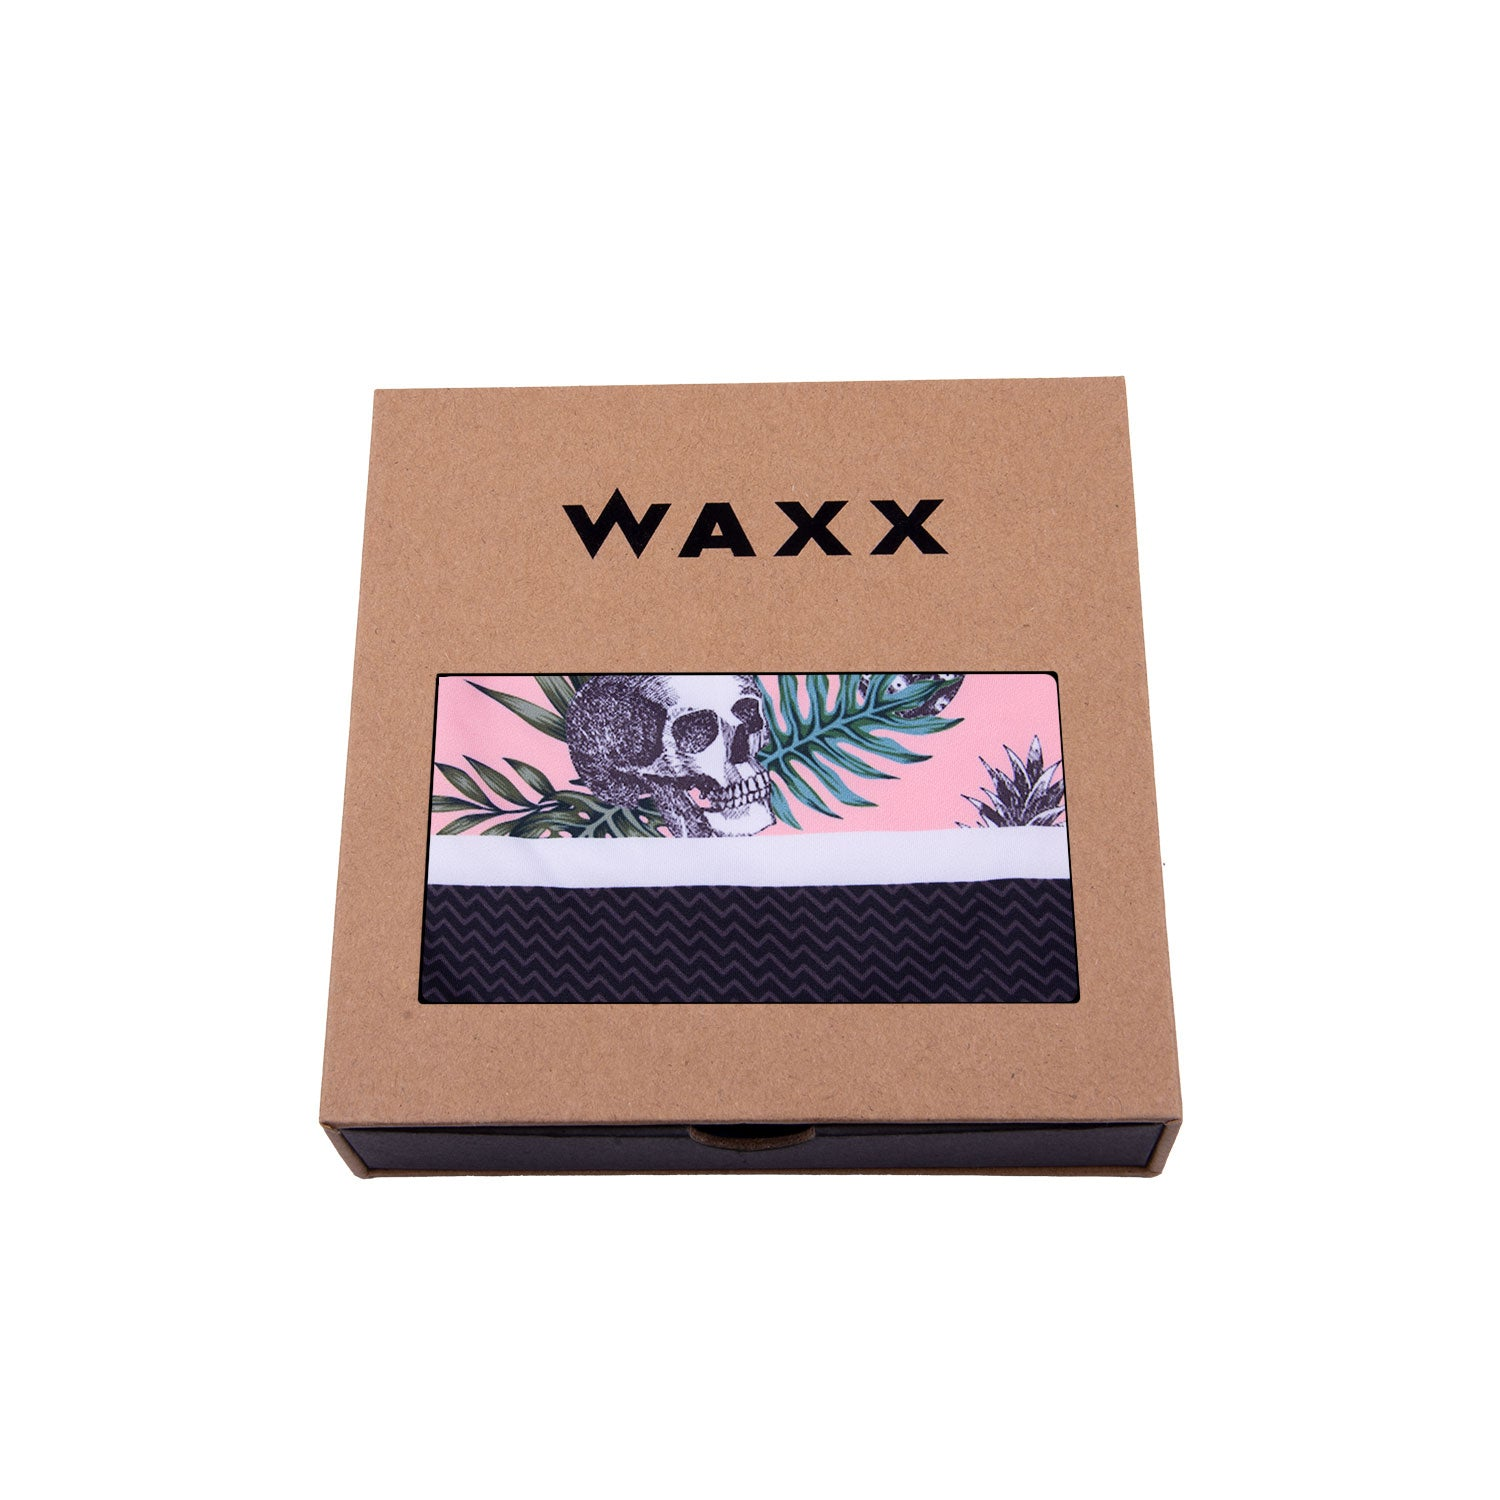 Waxx Men's Trunk Boxer Short Bogota